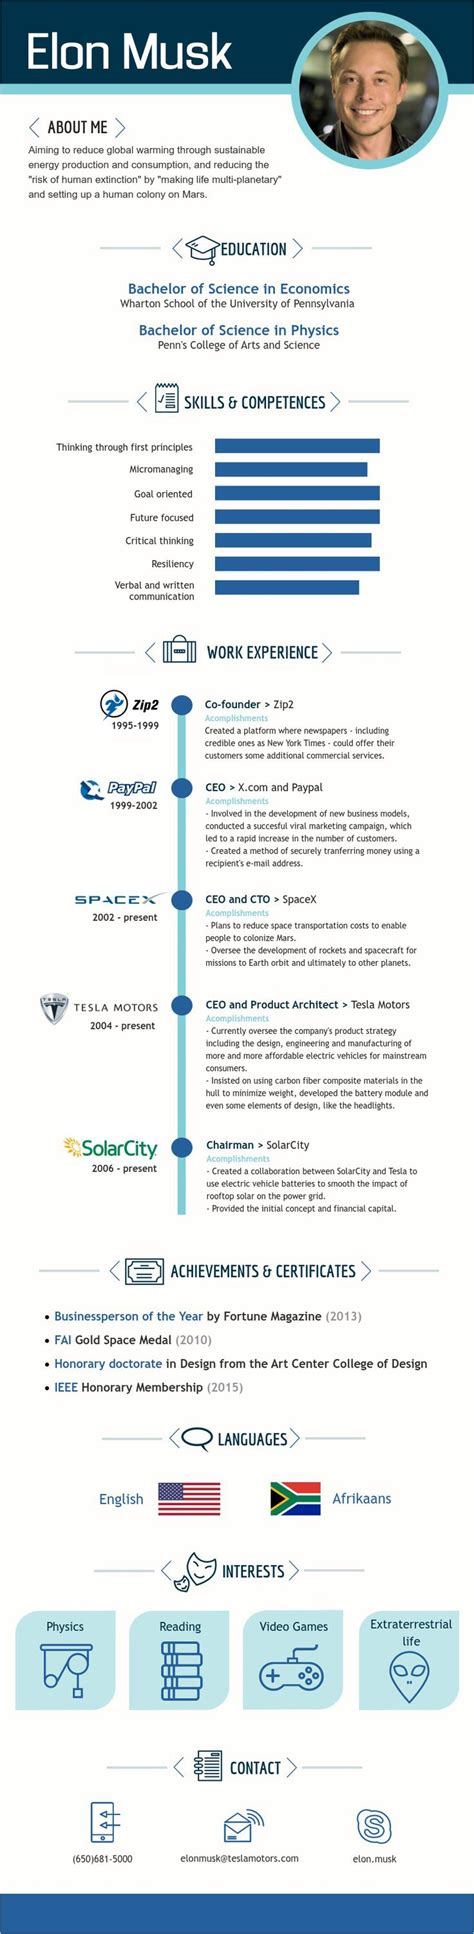 elon musk one page resume one page resume of elon musk how to make a resume best